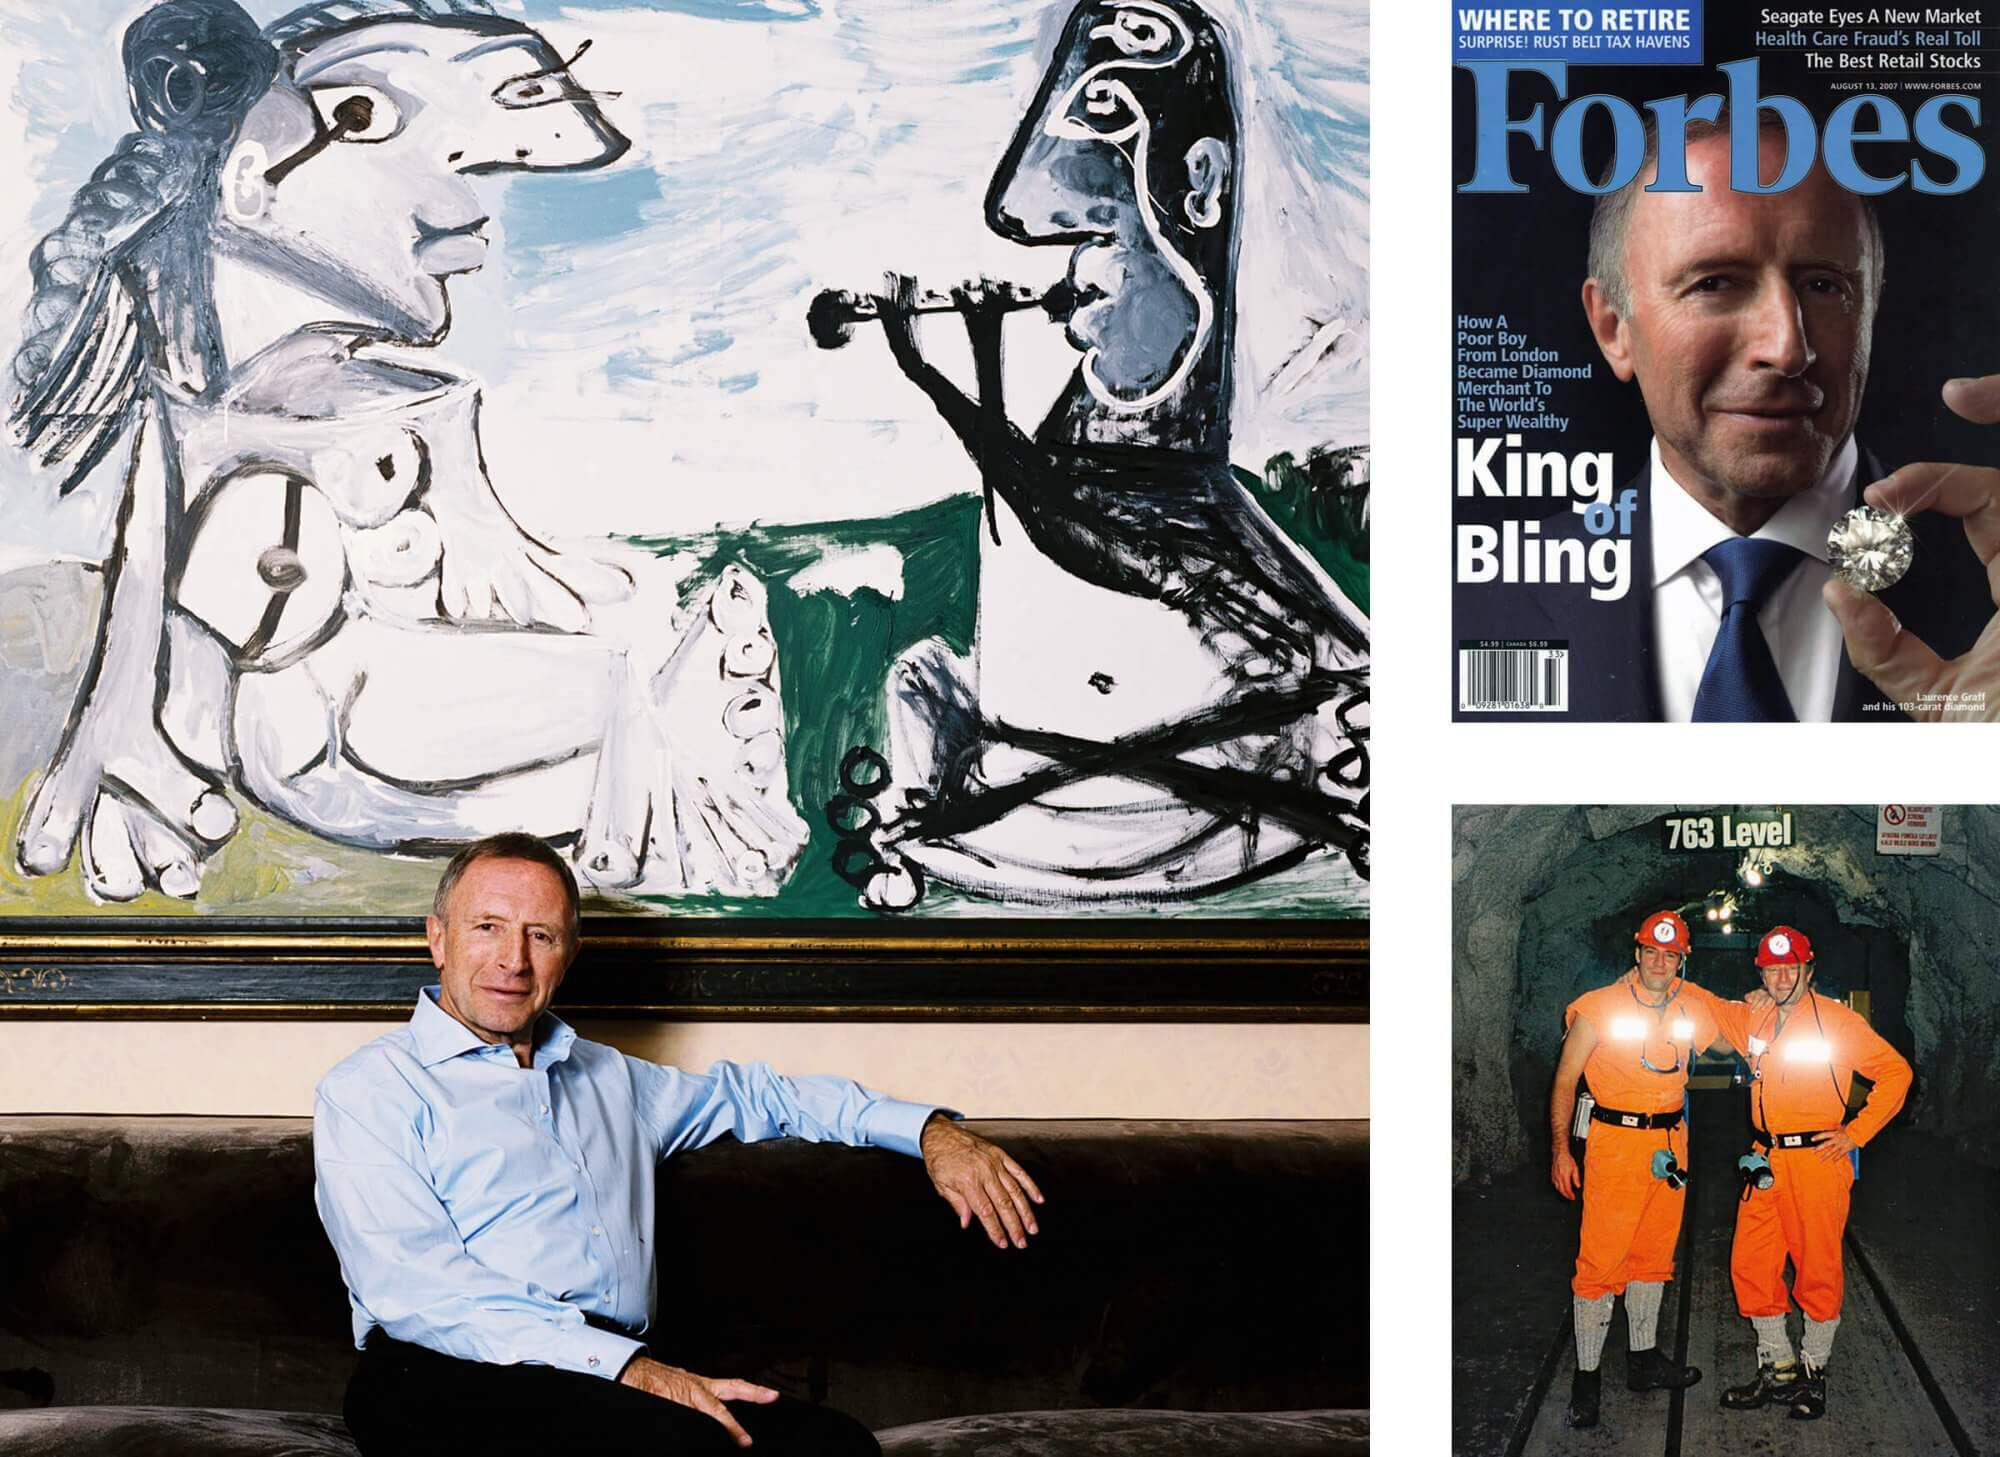 images of Mr Laurence Graff OBE sitting on a sofa, on the Forbes cover and in a mine with his son Mr Francois Graff